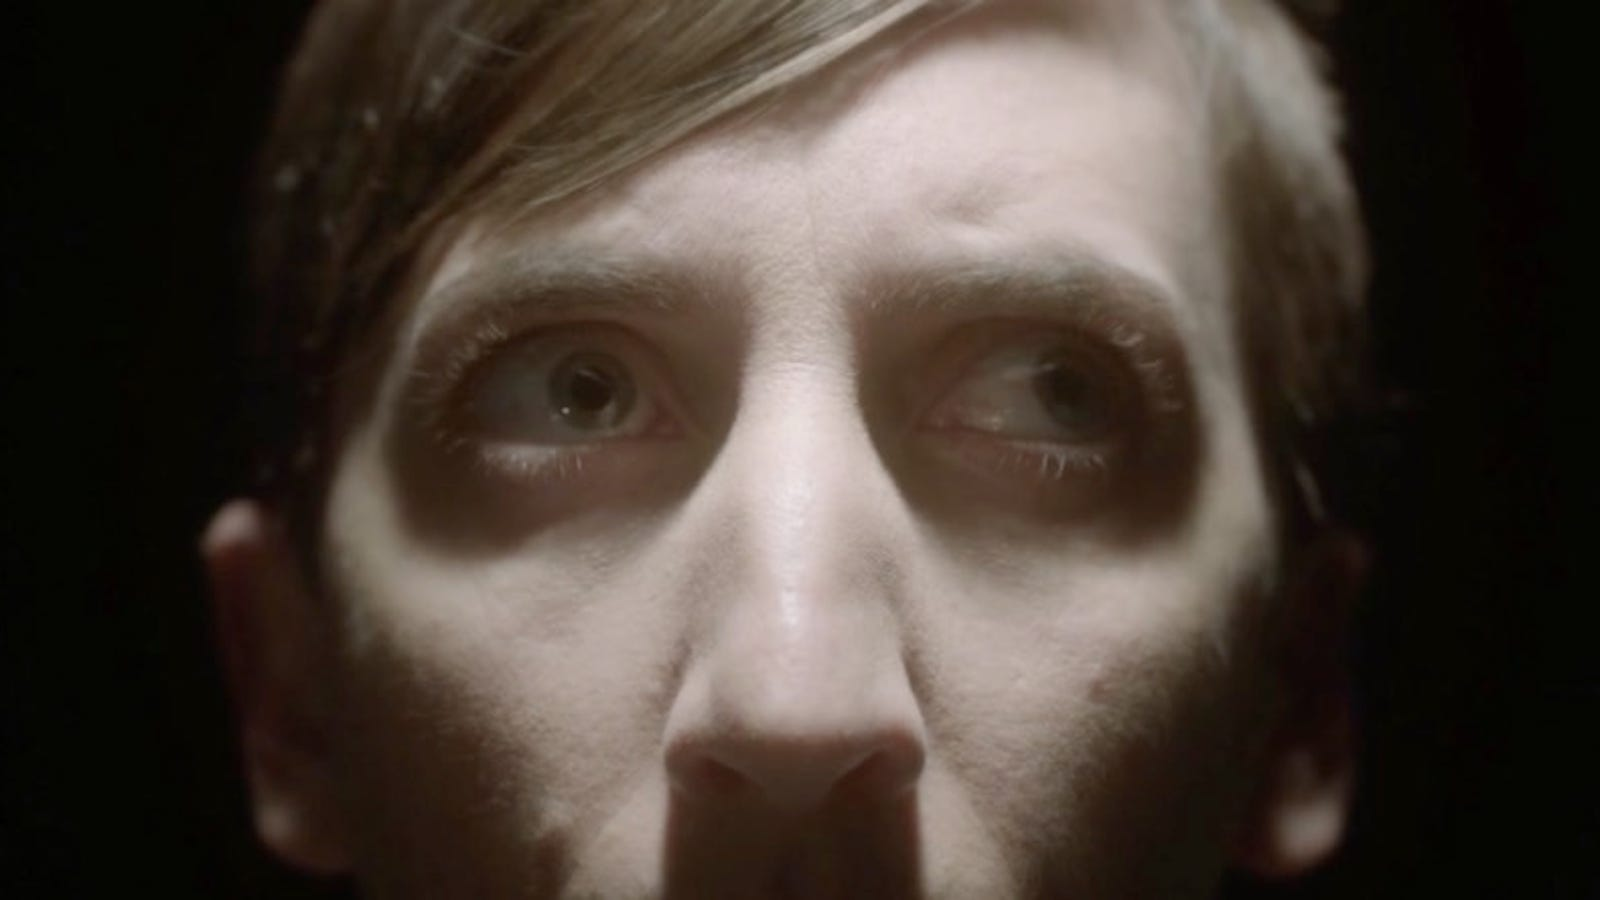 A Man Confronts the Perils of Perfection in This Clever Dystopian Short